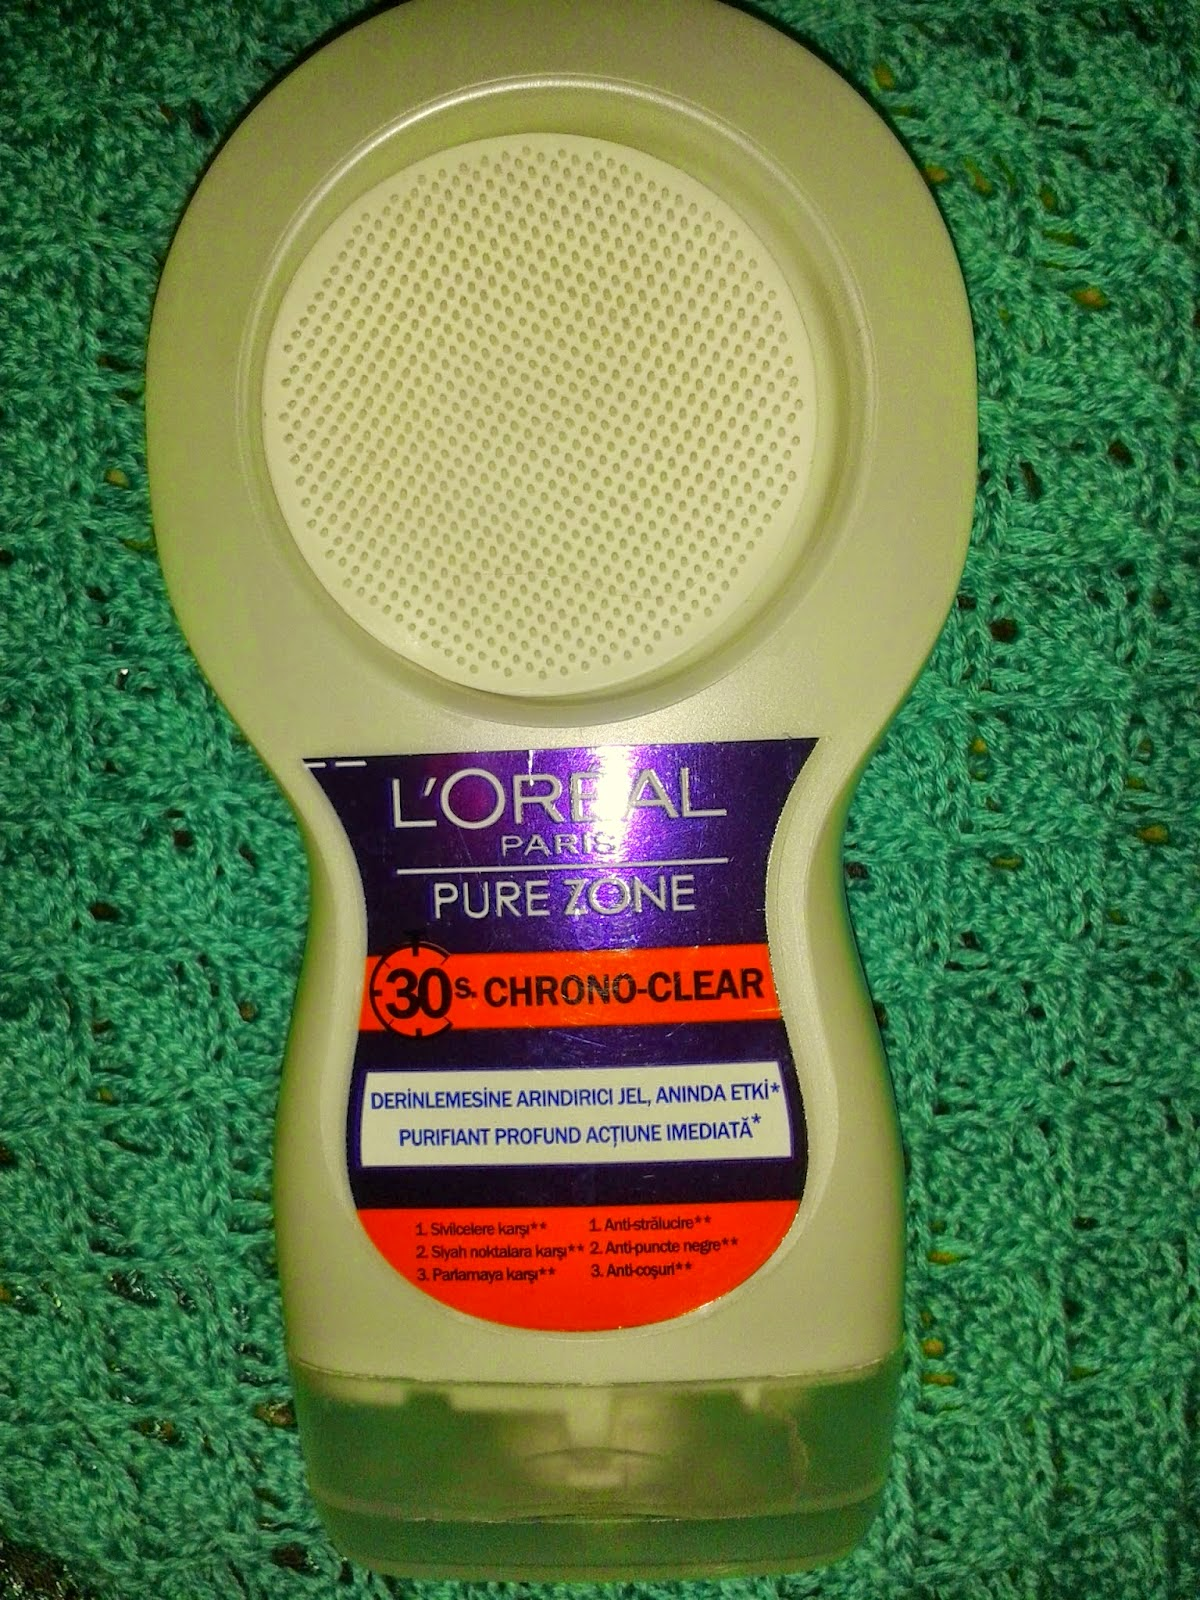 loreal pure zone 30s chrone clear